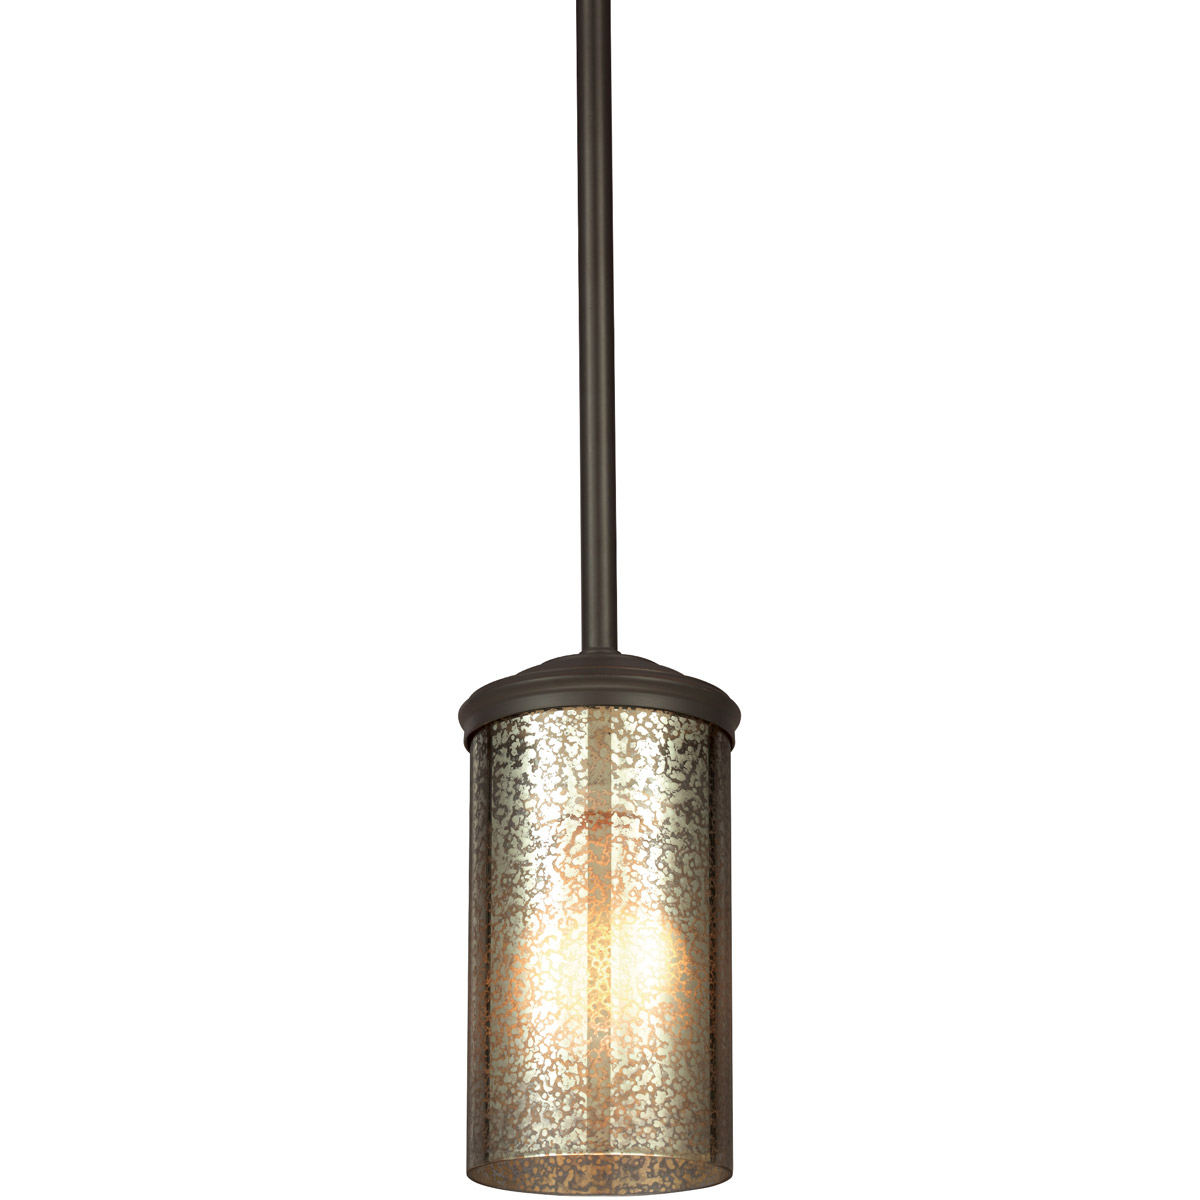 Sea Gull Sfera 1 Light Mini Pendant in Autumn Bronze 6110401-715 photo